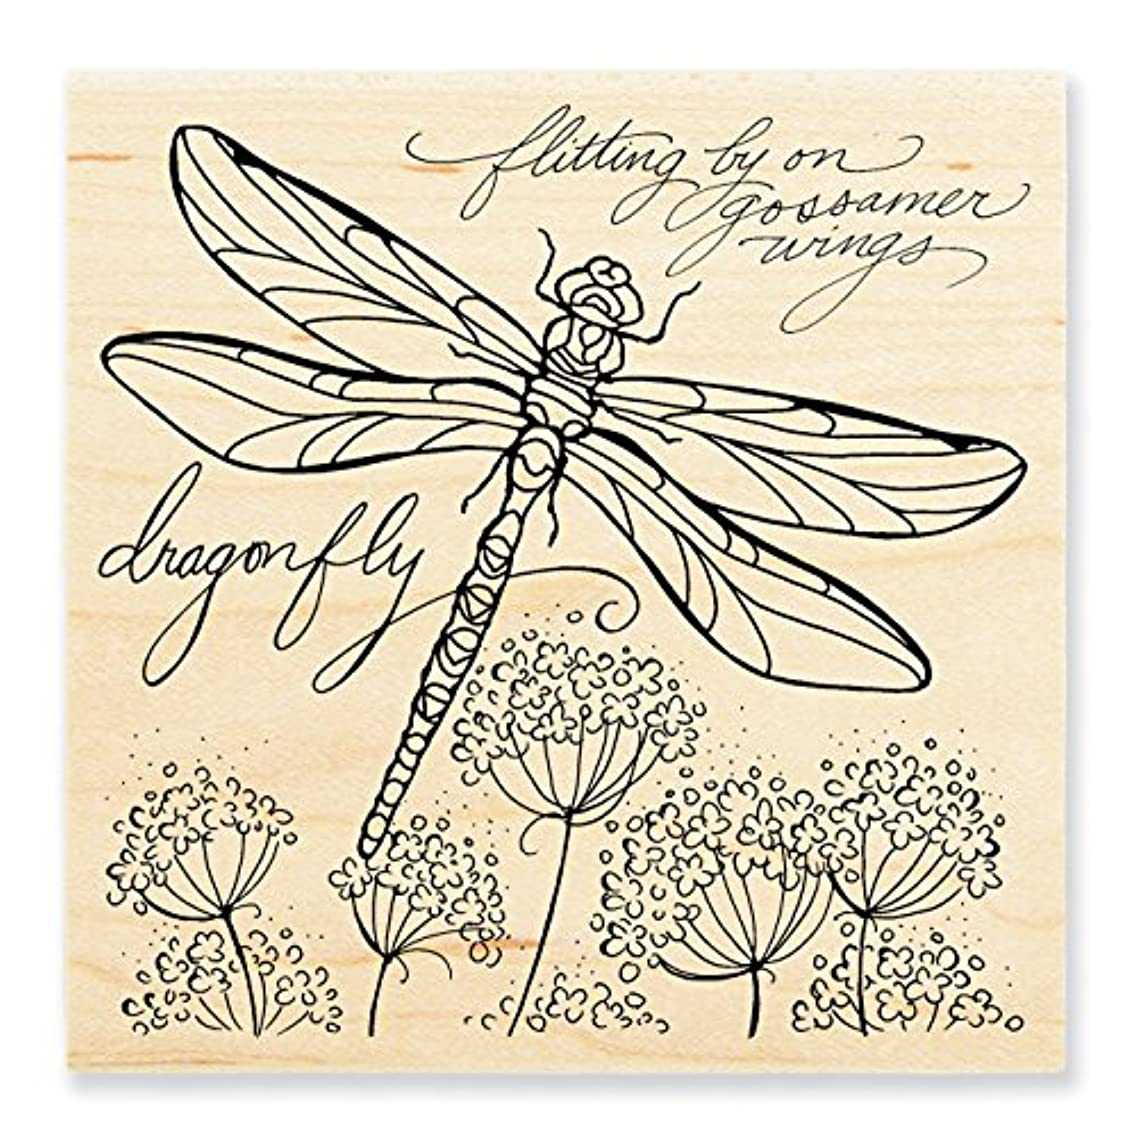 STAMPENDOUS Wood Stamp, Dragonfly Wings